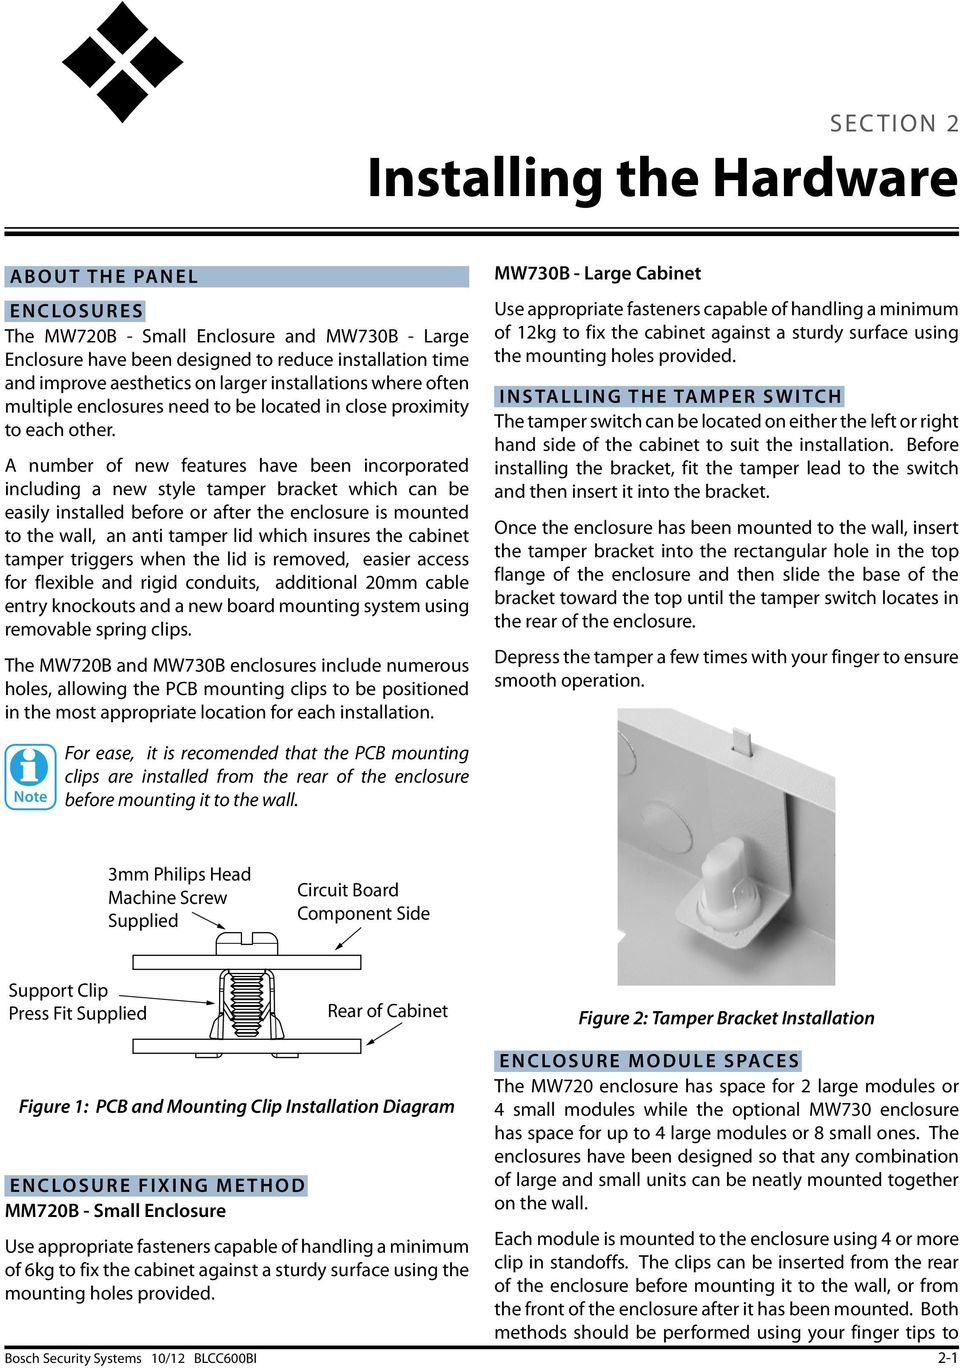 Solution 144 Security Systems Pdf Freewave Wiring Diagram A Number Of New Features Have Been Incorporated Including Style Tamper Bracket Which Can 18 Installation Manual